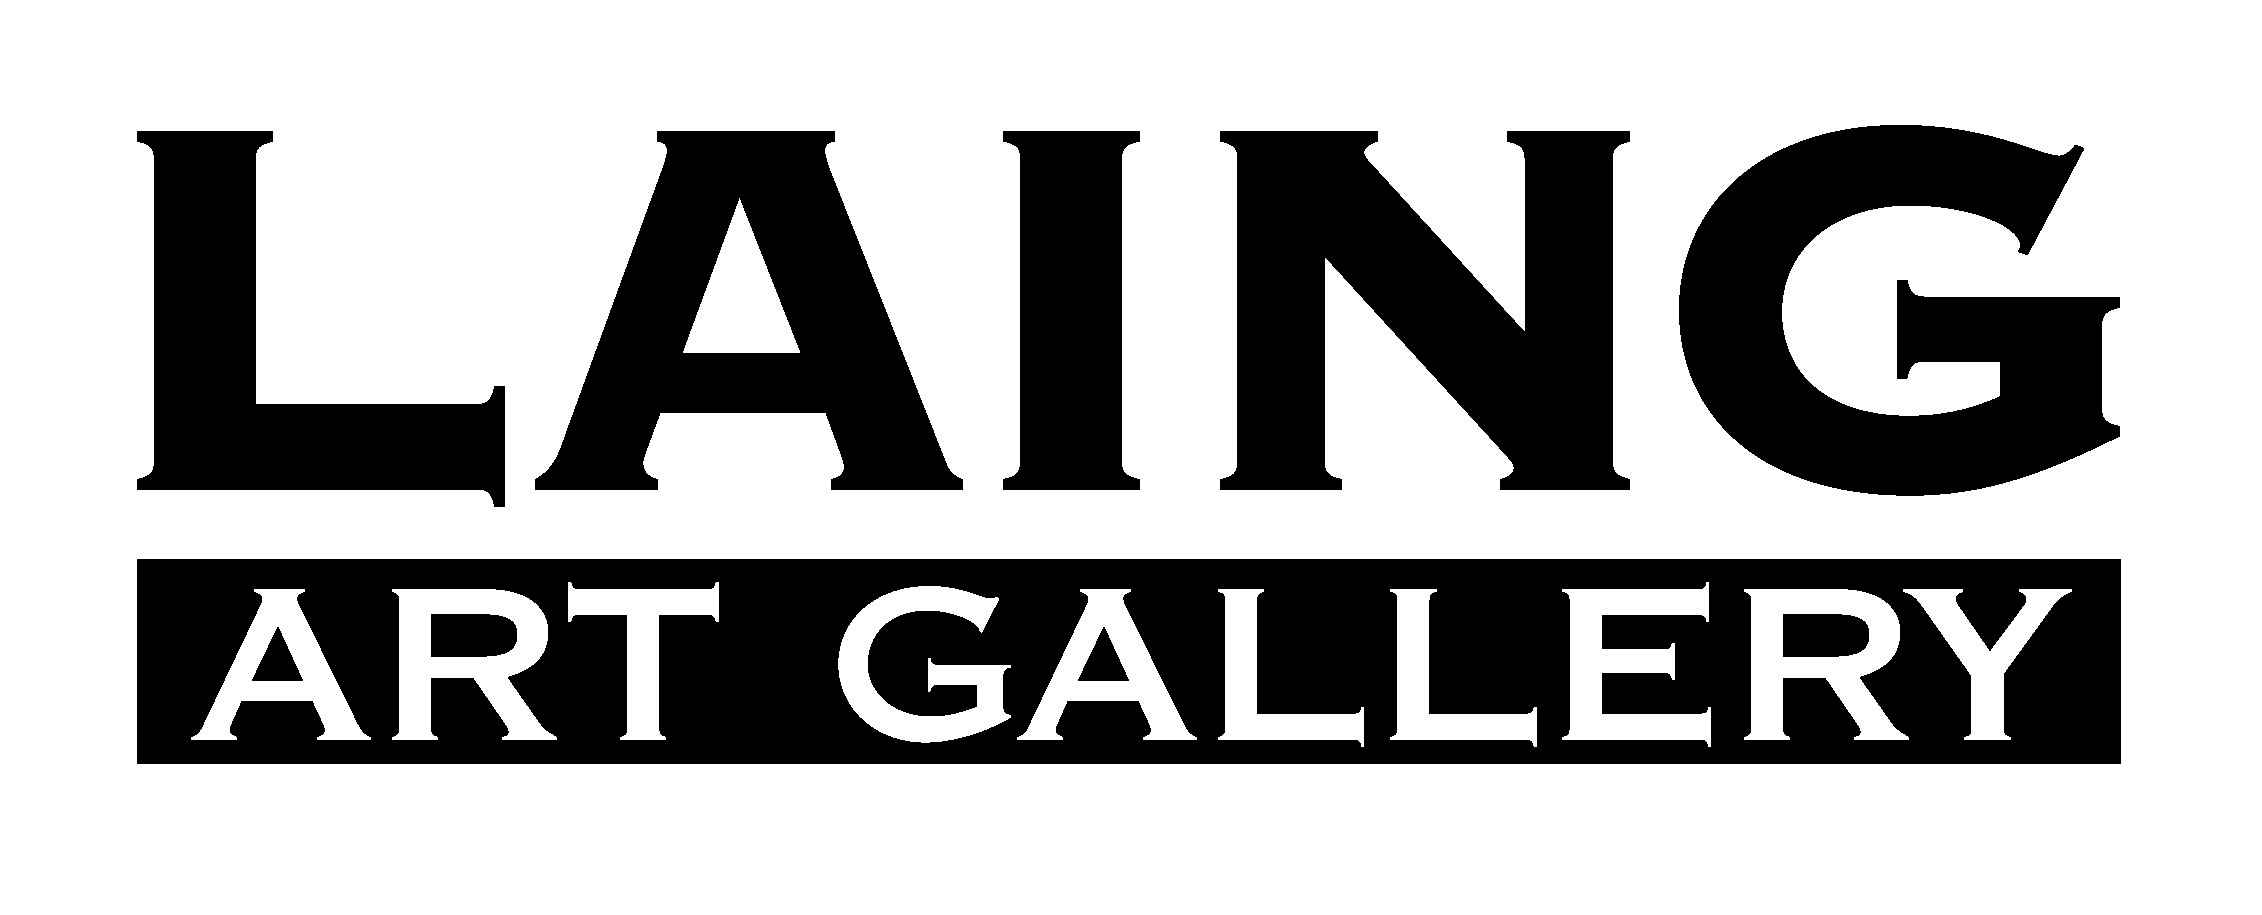 In collaboration with the Laing Art Gallery